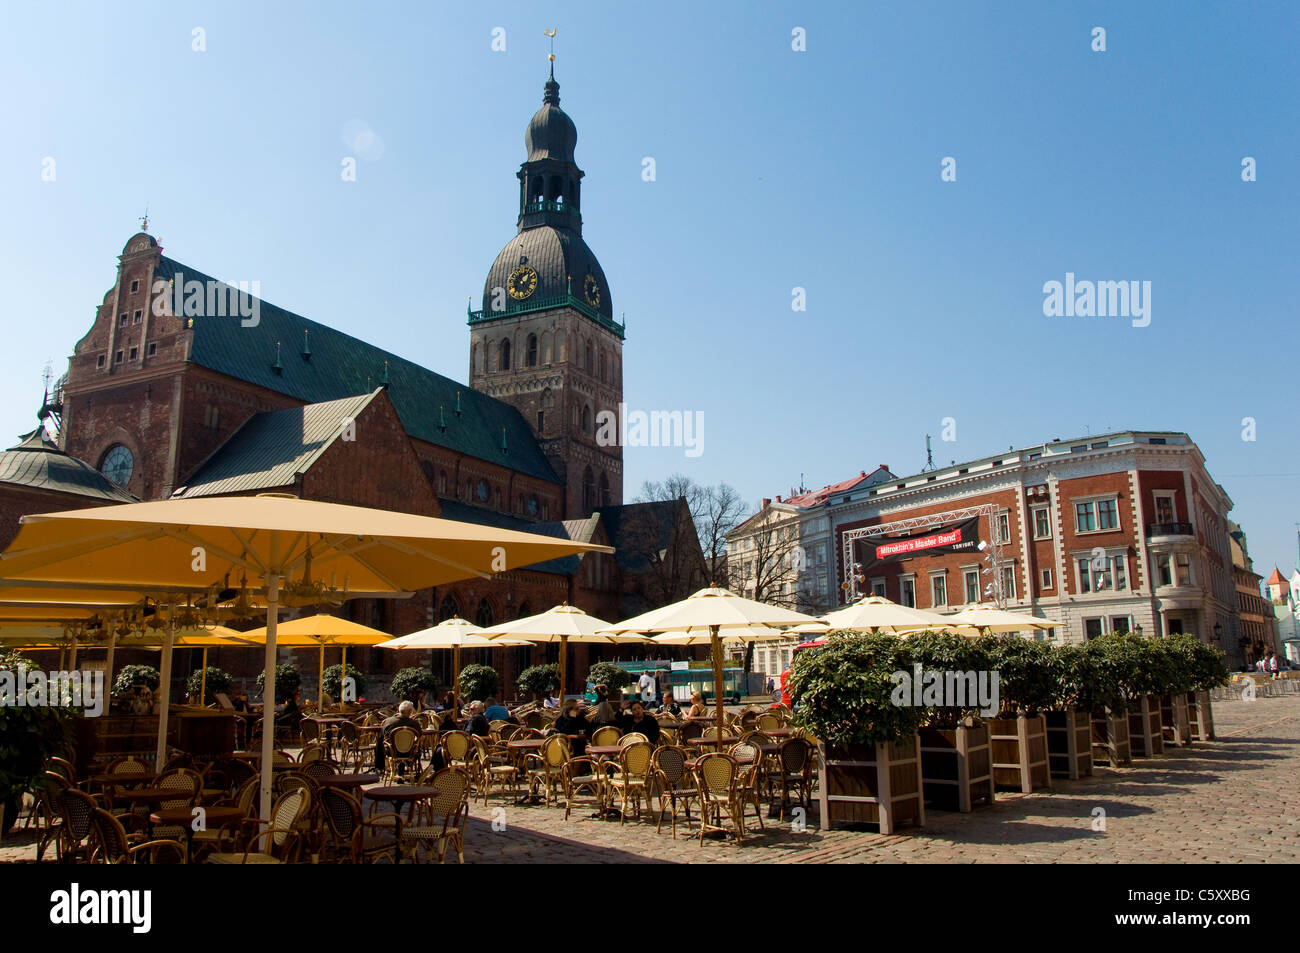 Terraces and cafés, Old Town, Riga, Latvia - Stock Image